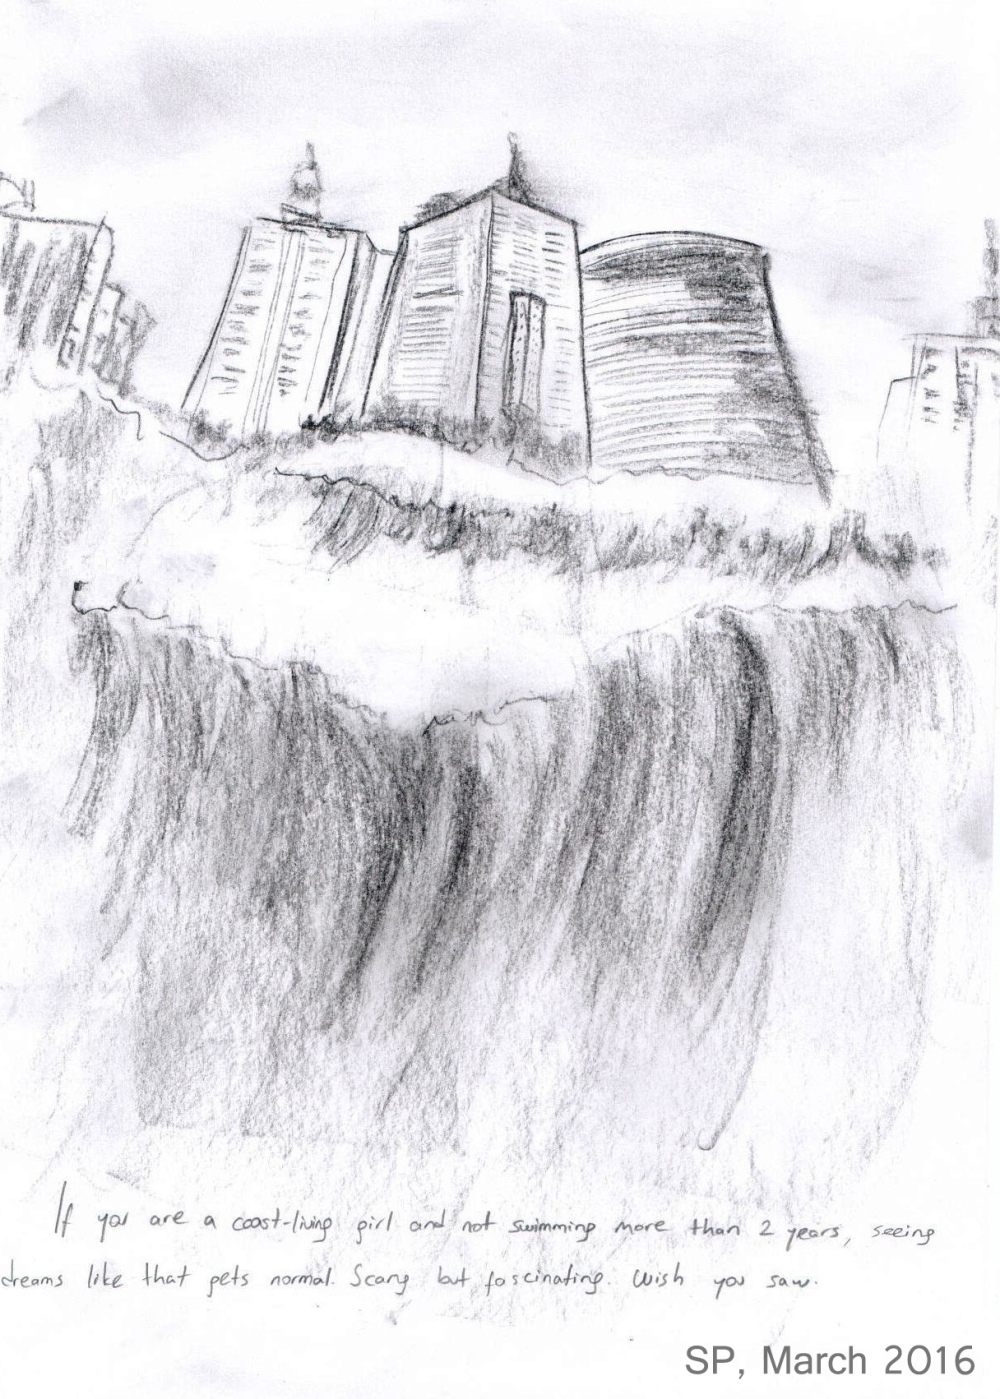 2016.03 skyscrapers and waves in the dream.jpg